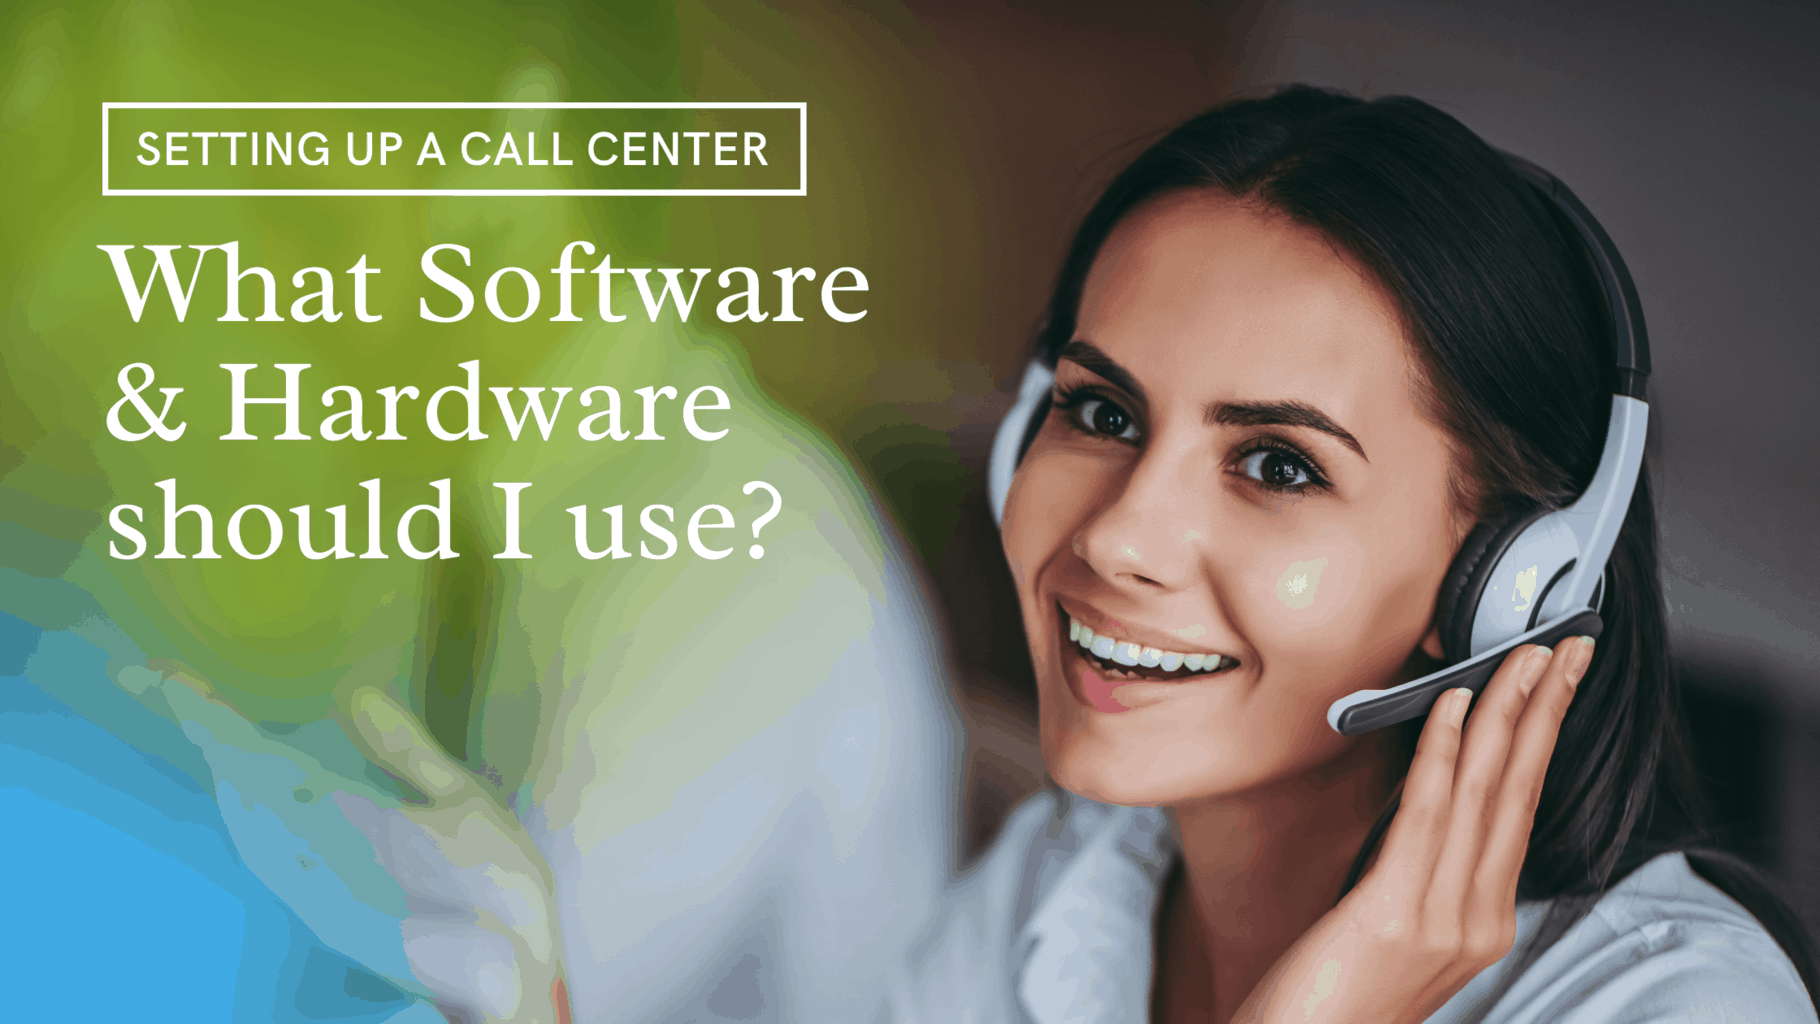 Hardware & Software required for a Call Center Setup